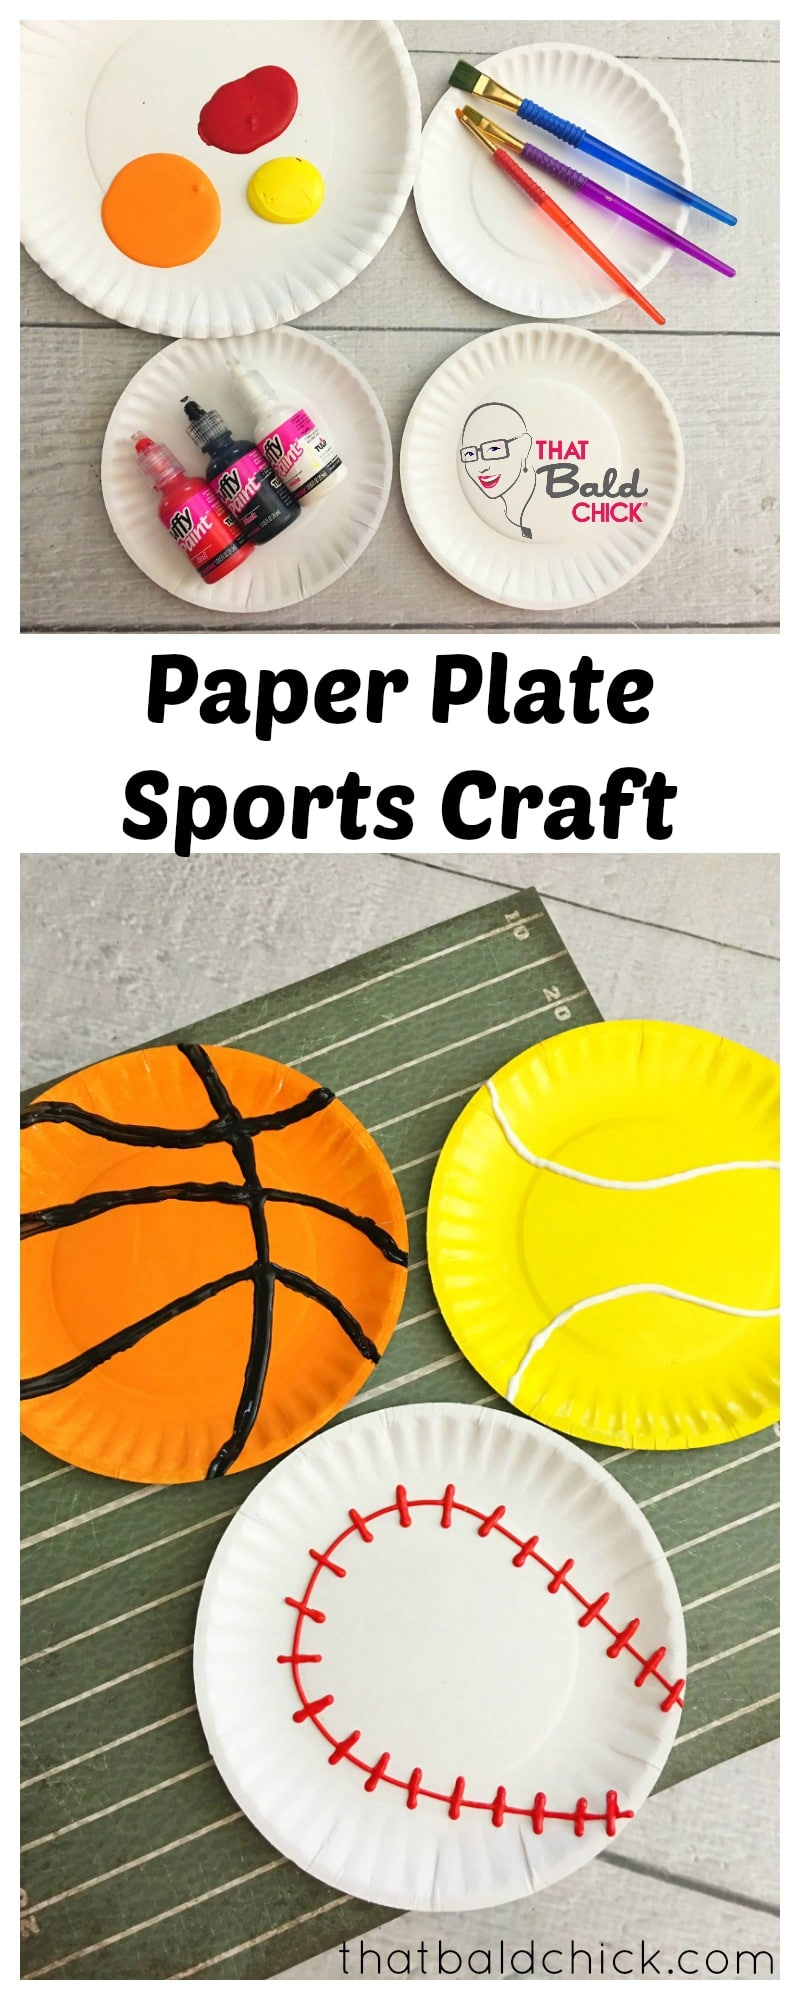 Paper Plate Sports Craft at thatbaldchick.com